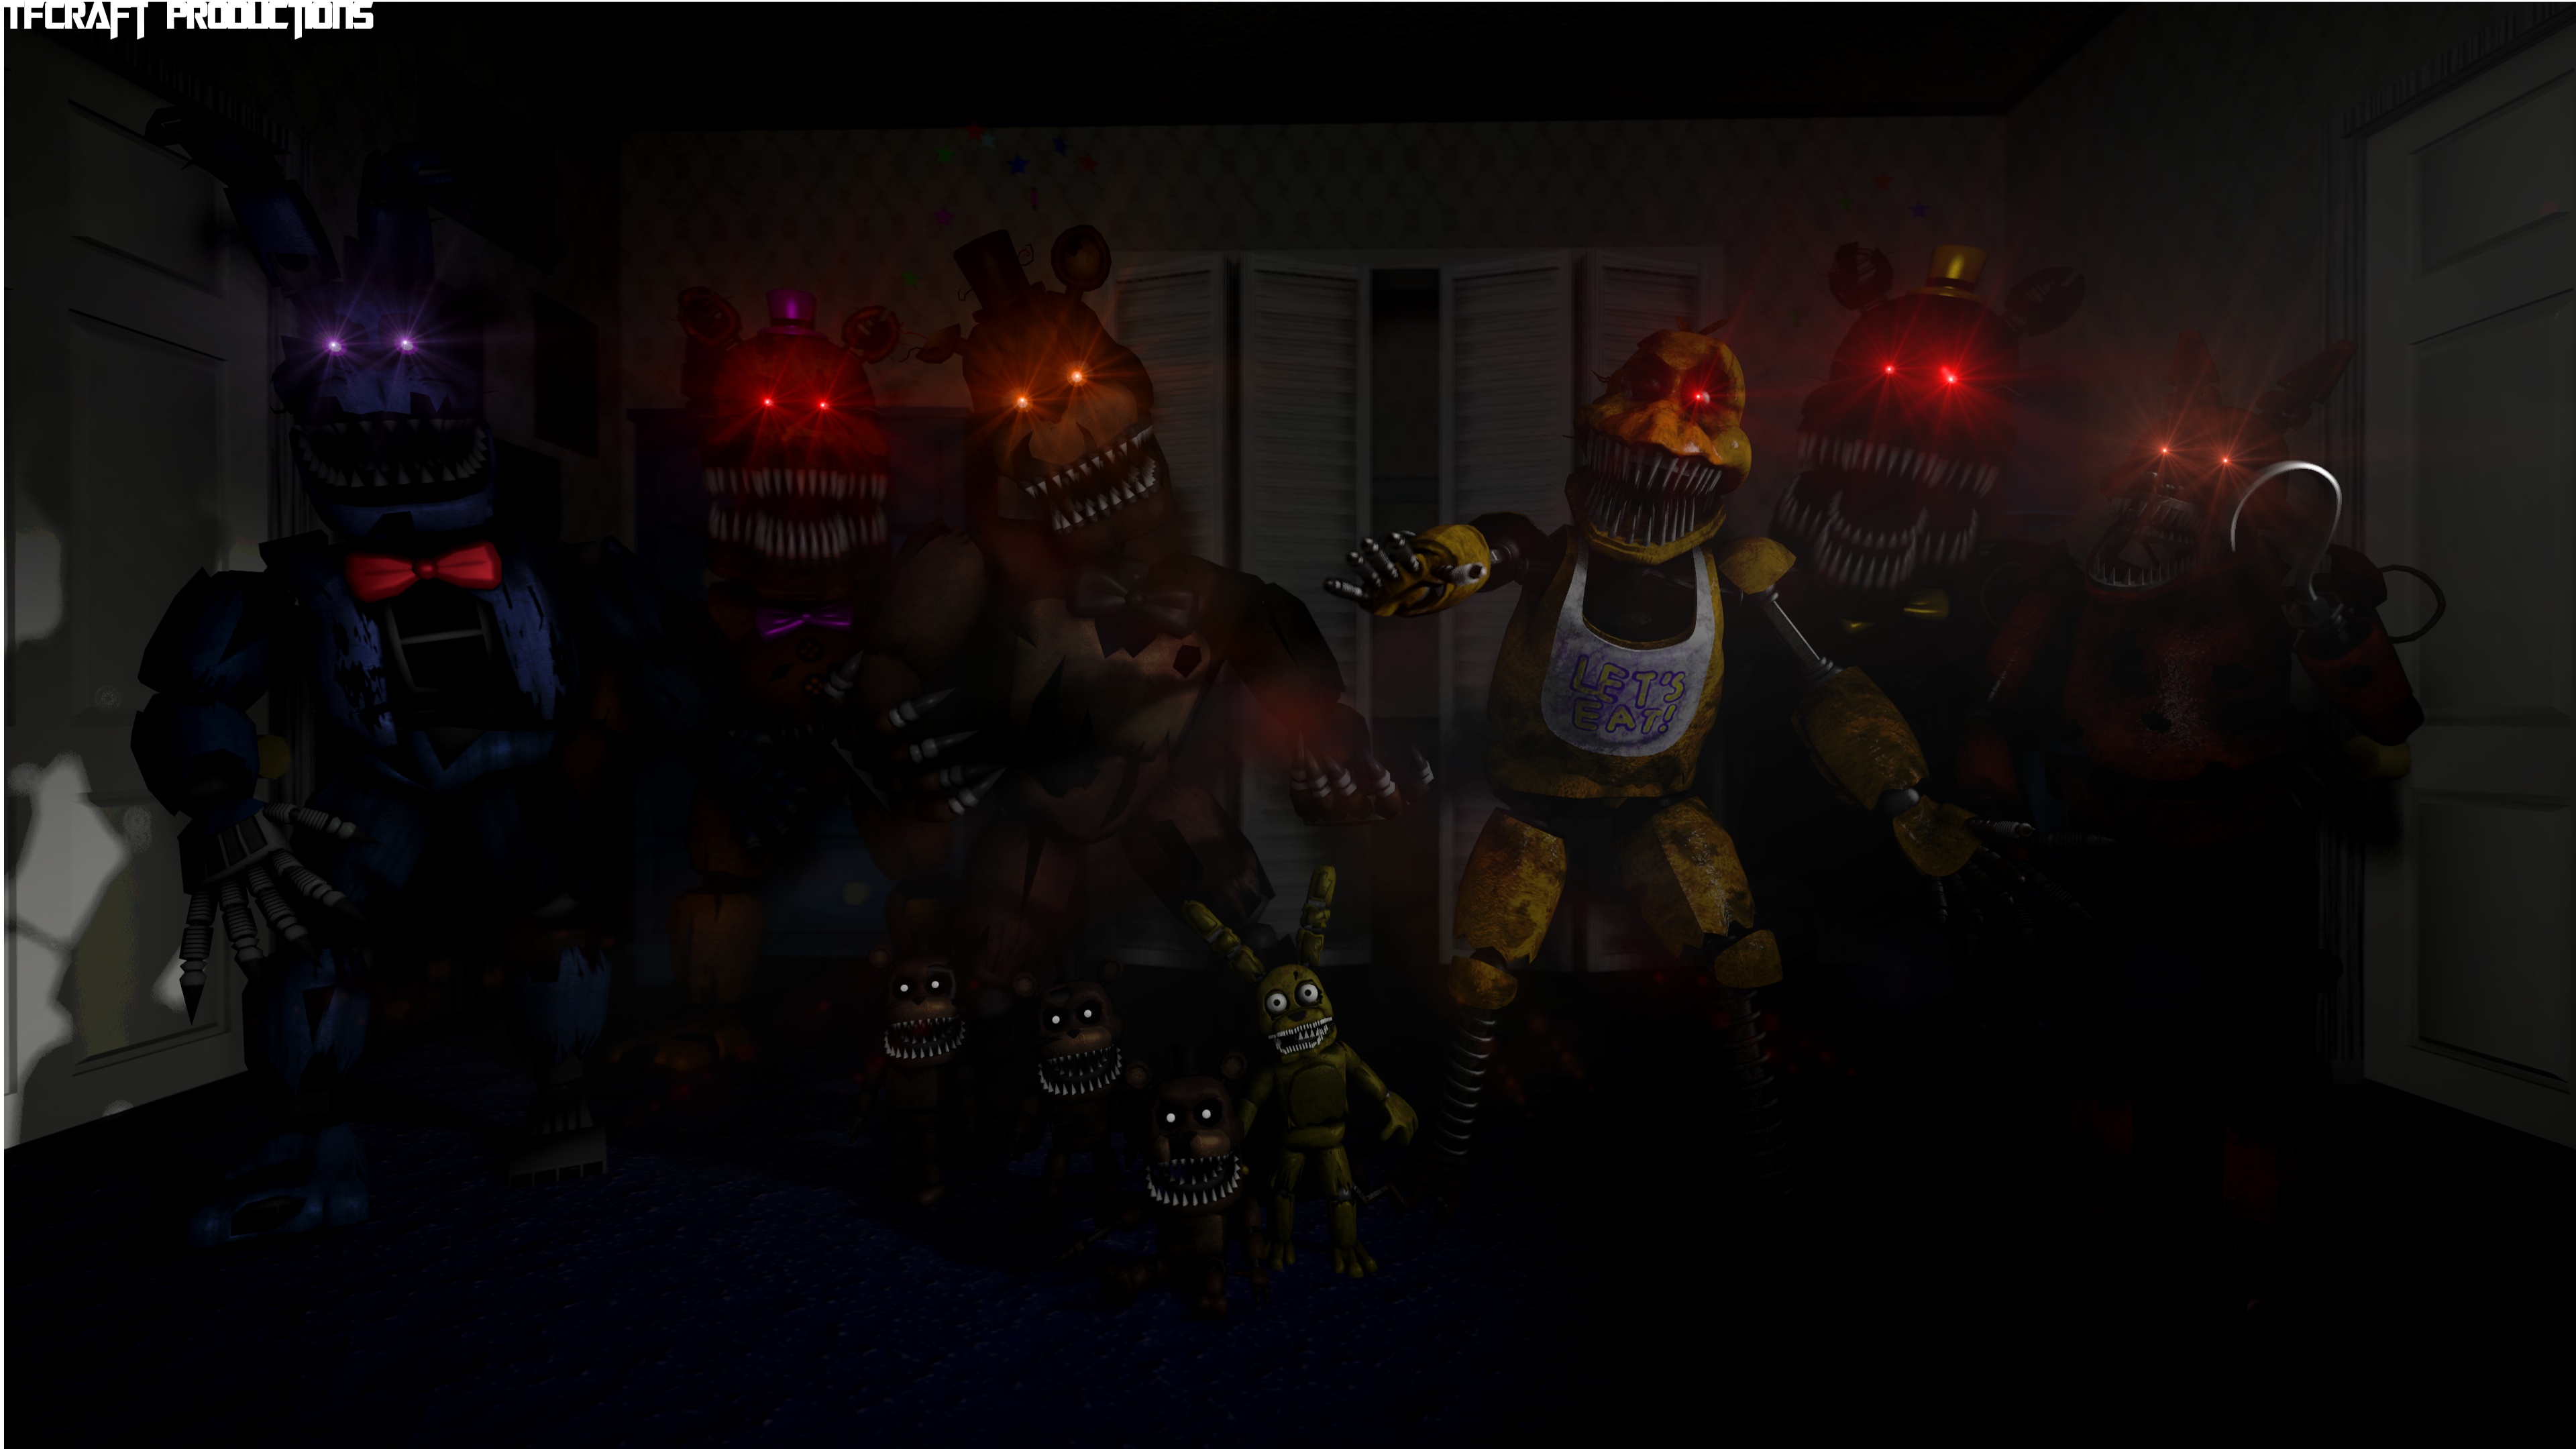 Five Nights at Freddy's 4 - The Gang's All Here by TF541Productions